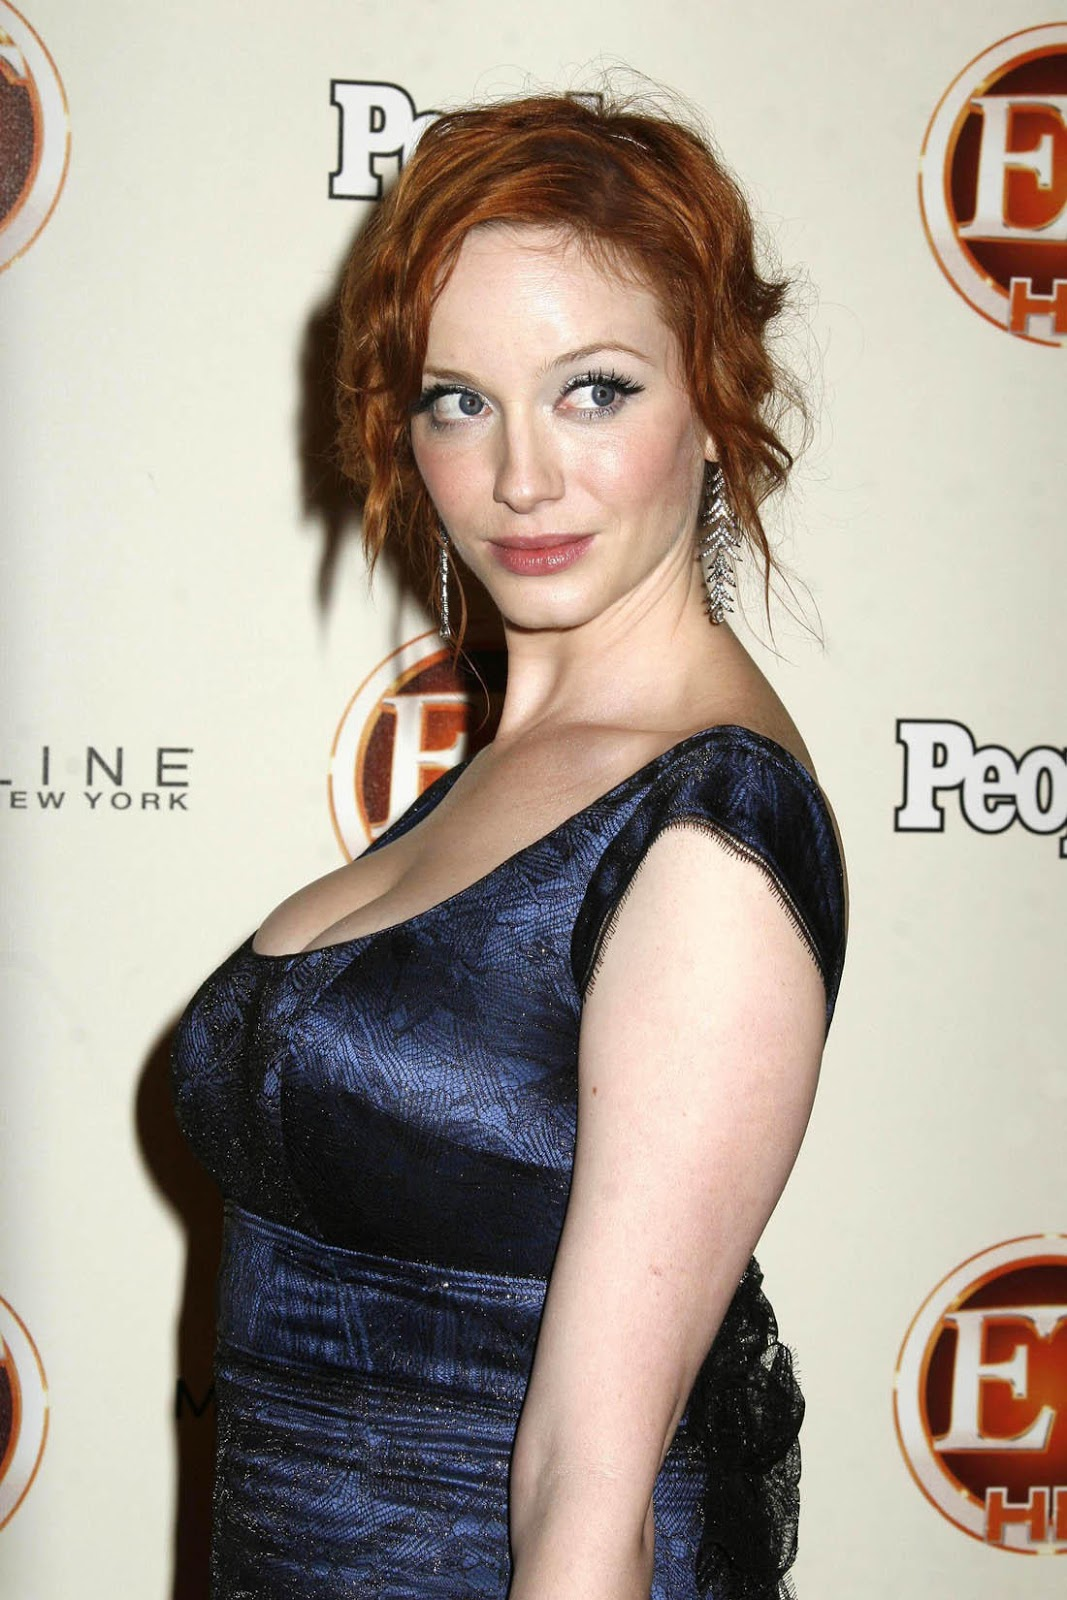 Christina hendricks weight gain 2018